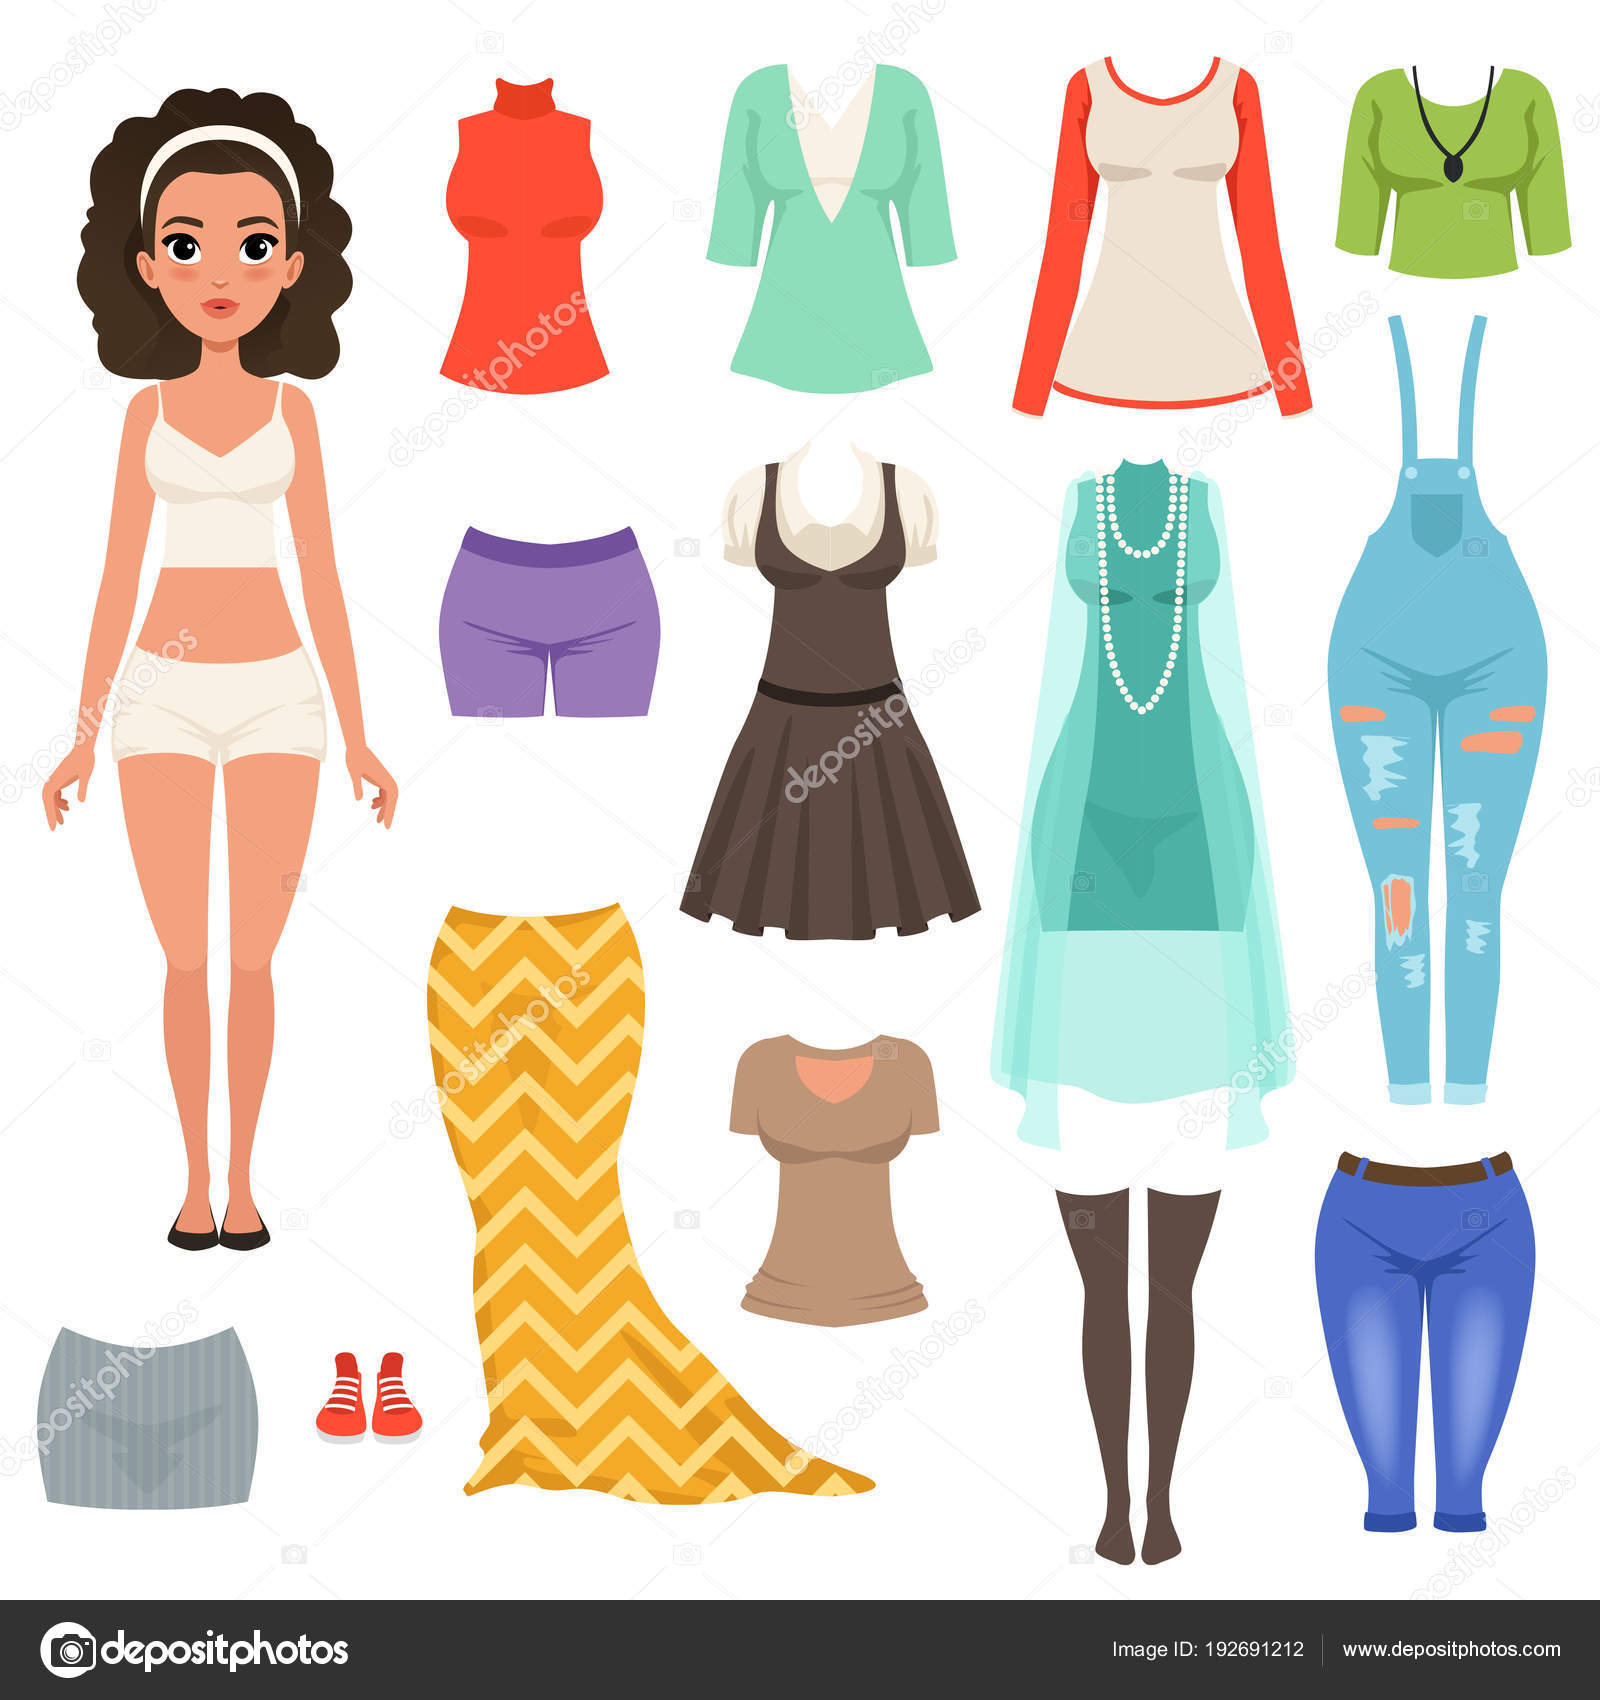 c2cad5dedc1a3e Fashionable female apparel– stock illustration. Flat vector set of women s  clothes items. Stylish denim overall, blouses, skirts